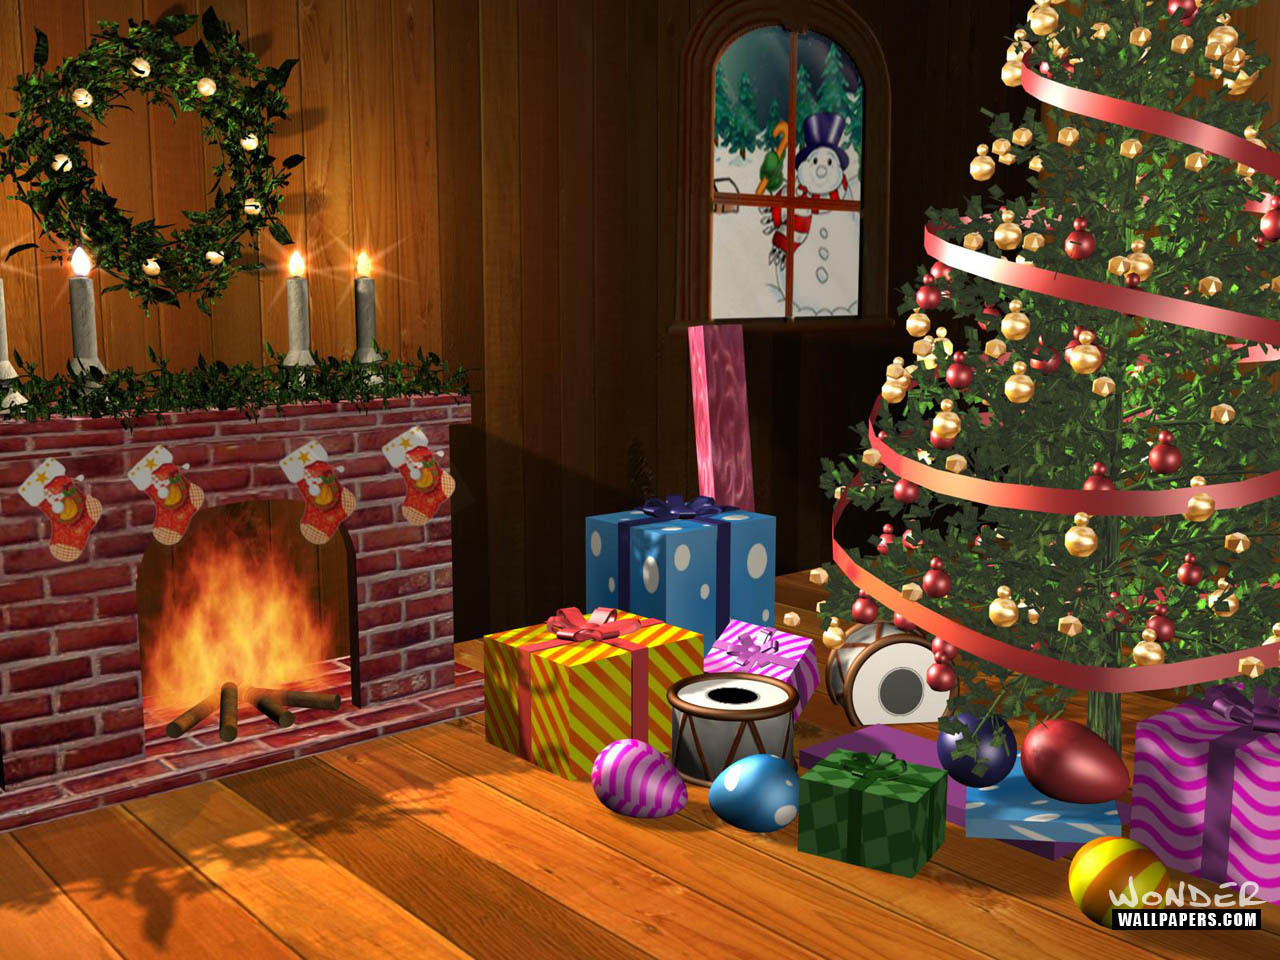 Crazy Frankenstein Christmas scenes wallpapers